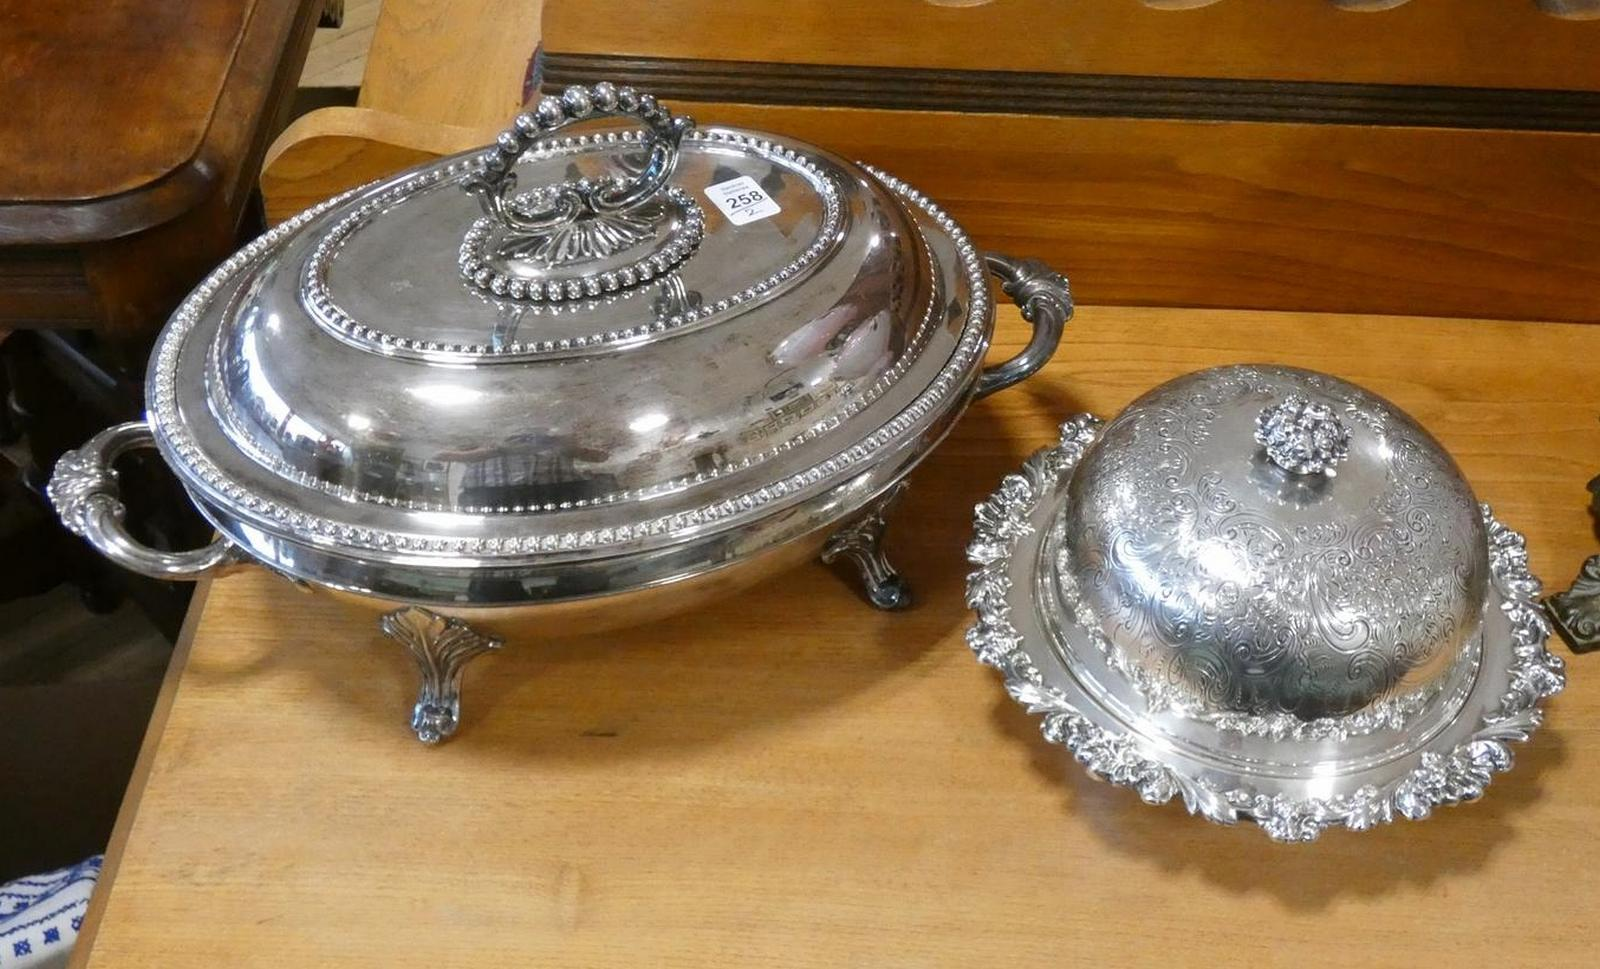 TWO SILVERPLATE SERVERS